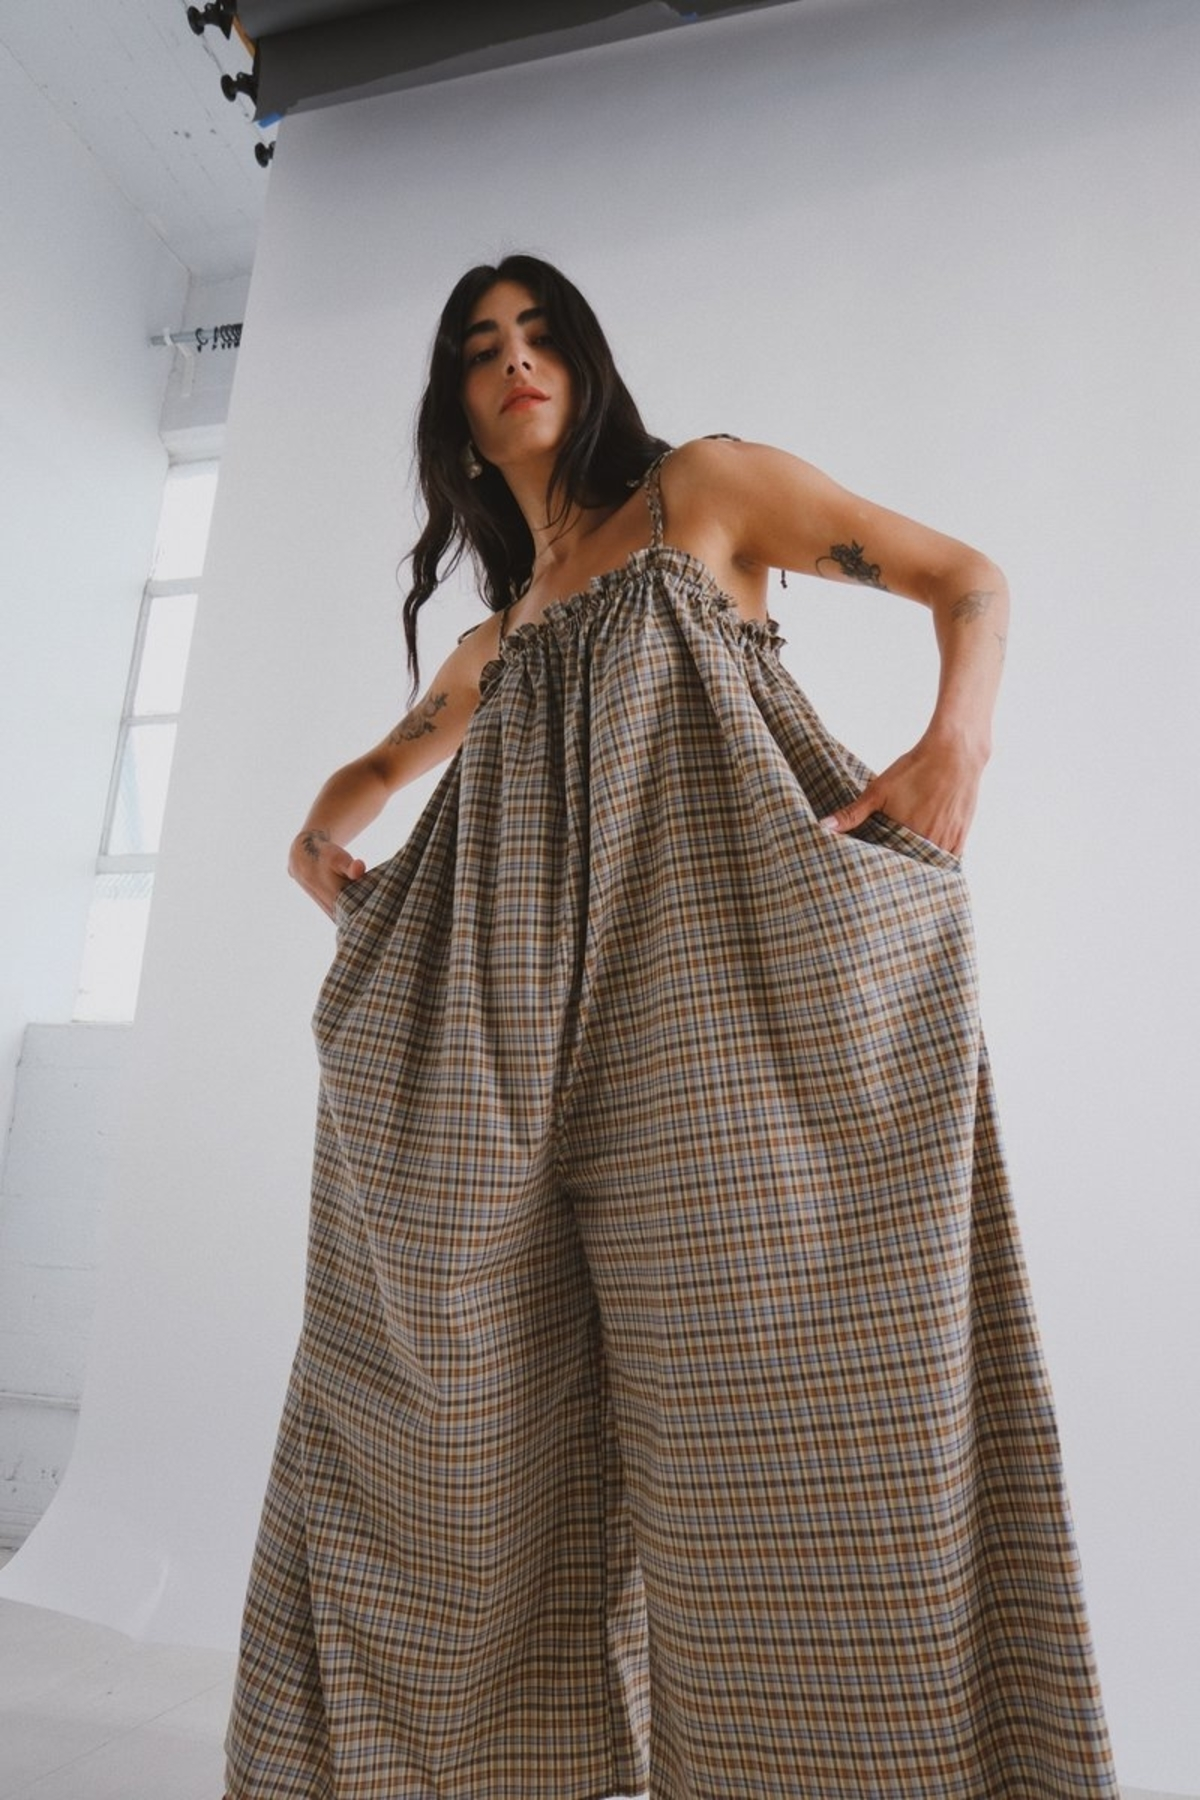 Female empowerment, by women for women, sustainable brands, sustainable fashion, sustainability, recycled materials, proclaim, carbon footprint, we are we wear, swimwear, selva negra, eileen fisher, girlfriend collective, house of aama, african culture, ethical brands, able, we are kin, stripe & stare, pour les femmes, sleepwear